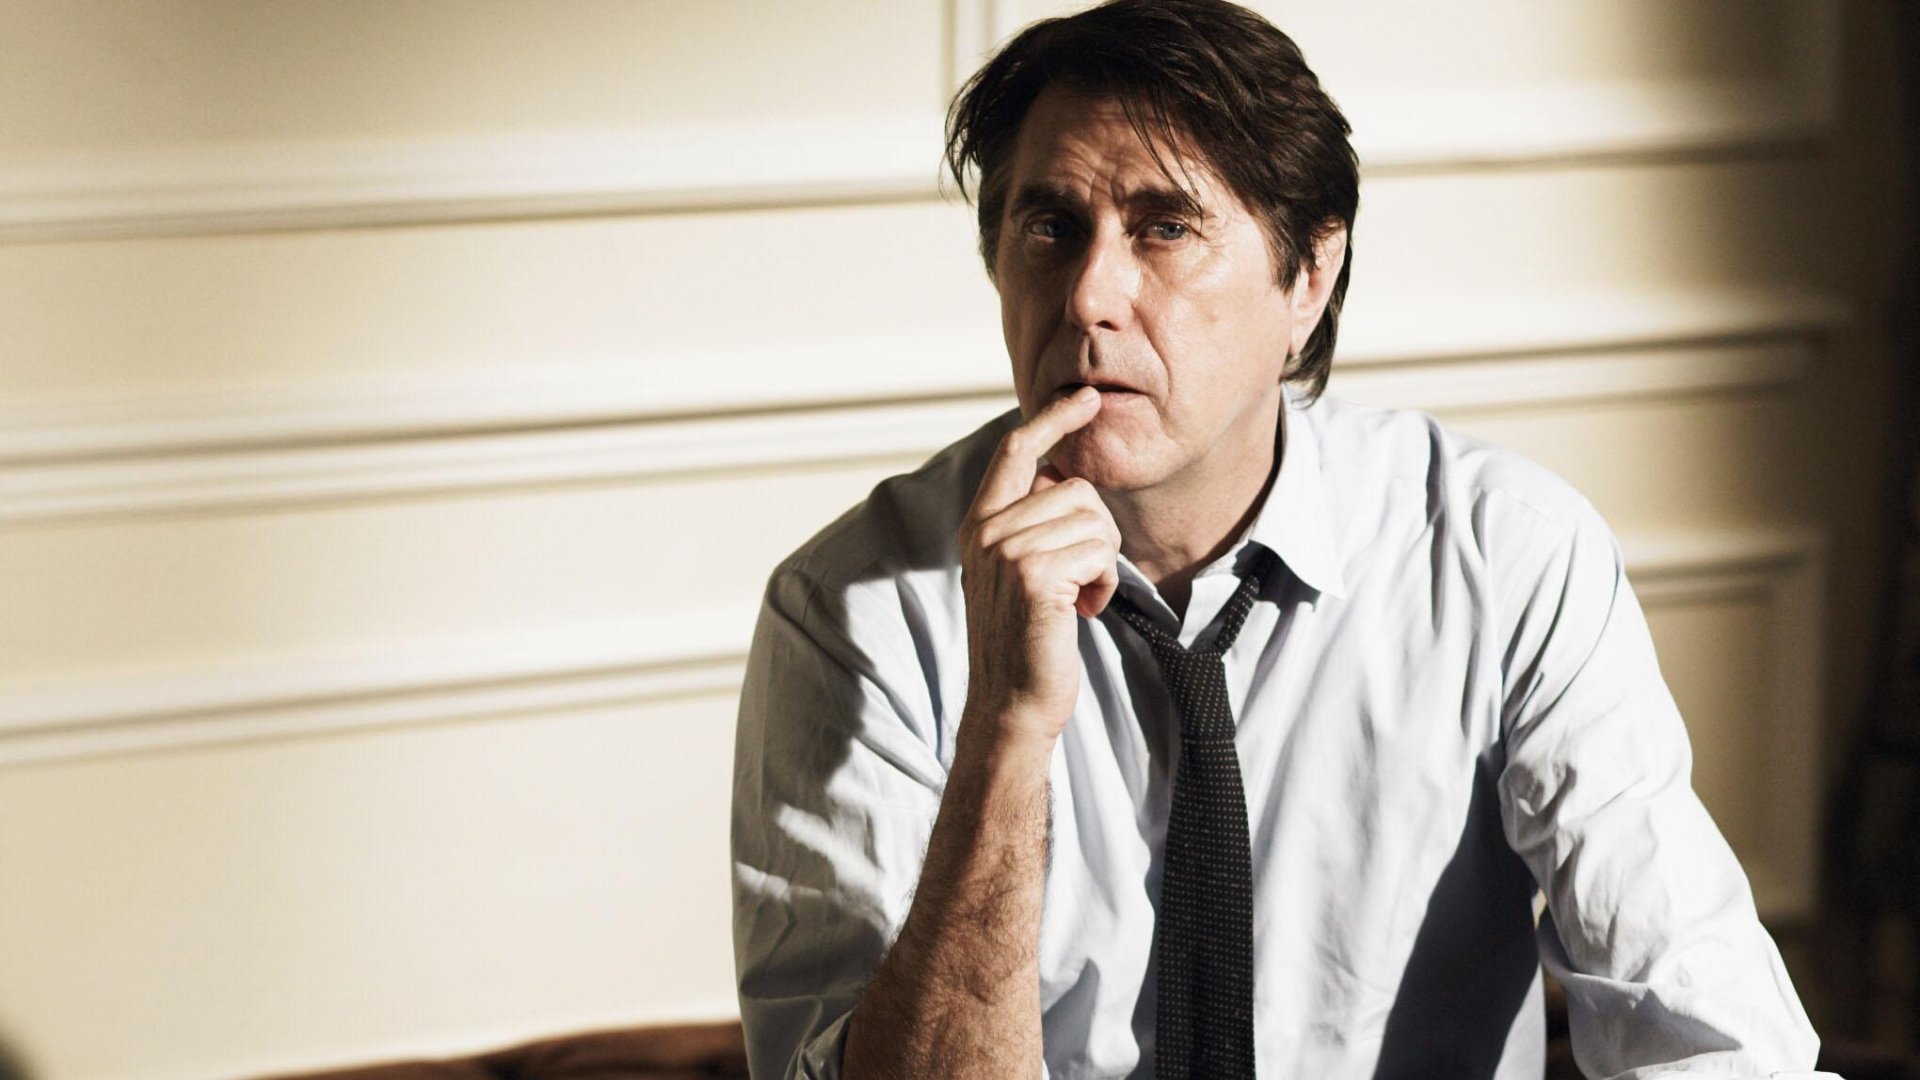 I Put A Spell On You av Bryan Ferry